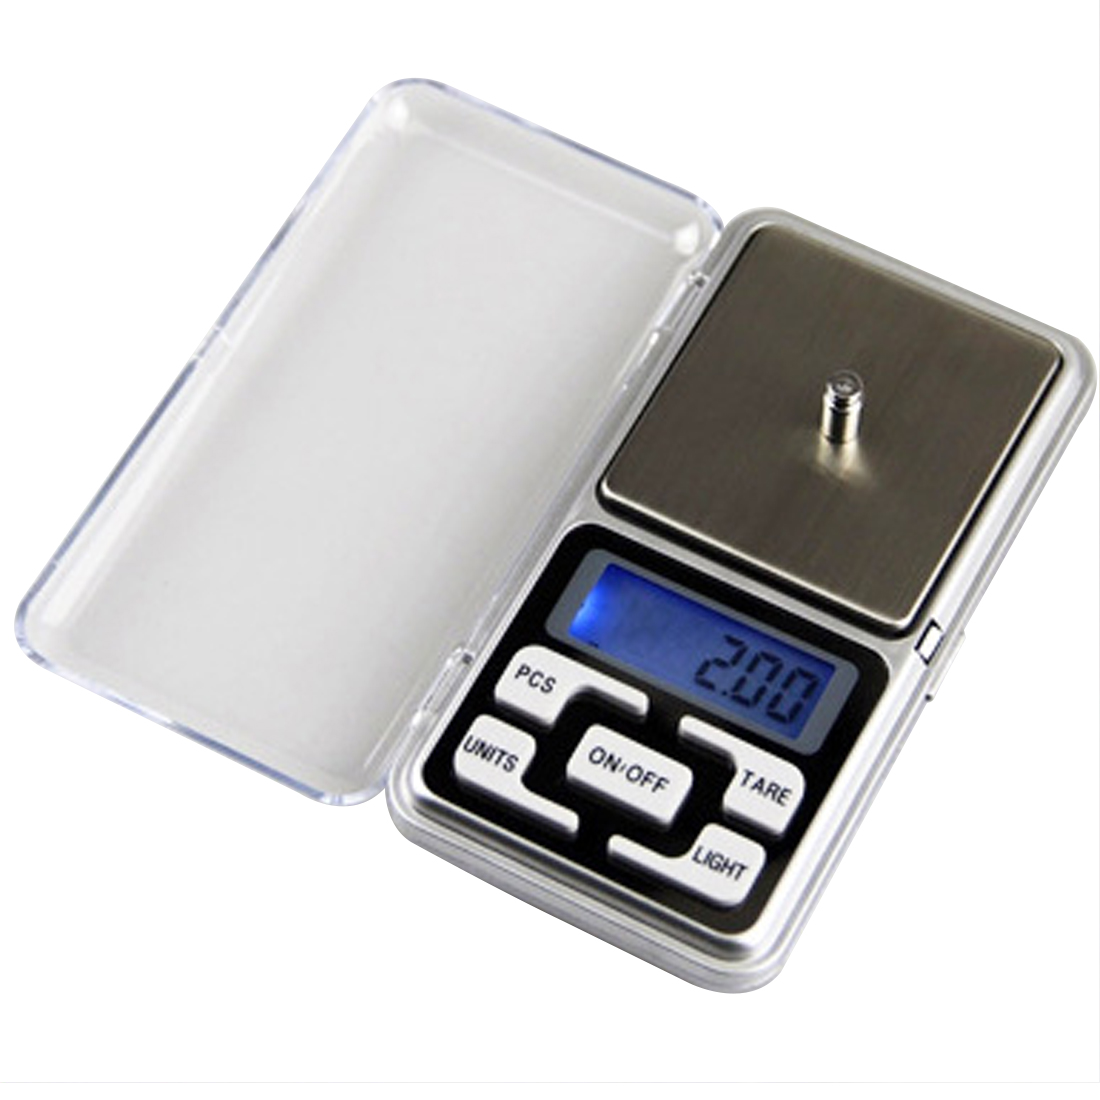 1pcs 200g/0.01g Mini Precision Digital Scales For Gold Bijoux Sterling Silver Scale Jewelry 0.01 Weight Electronic Scales 200g 0 2g lab balance pallet balance plate rack scales mechanical scales students scales for pharmaceuticals with weights